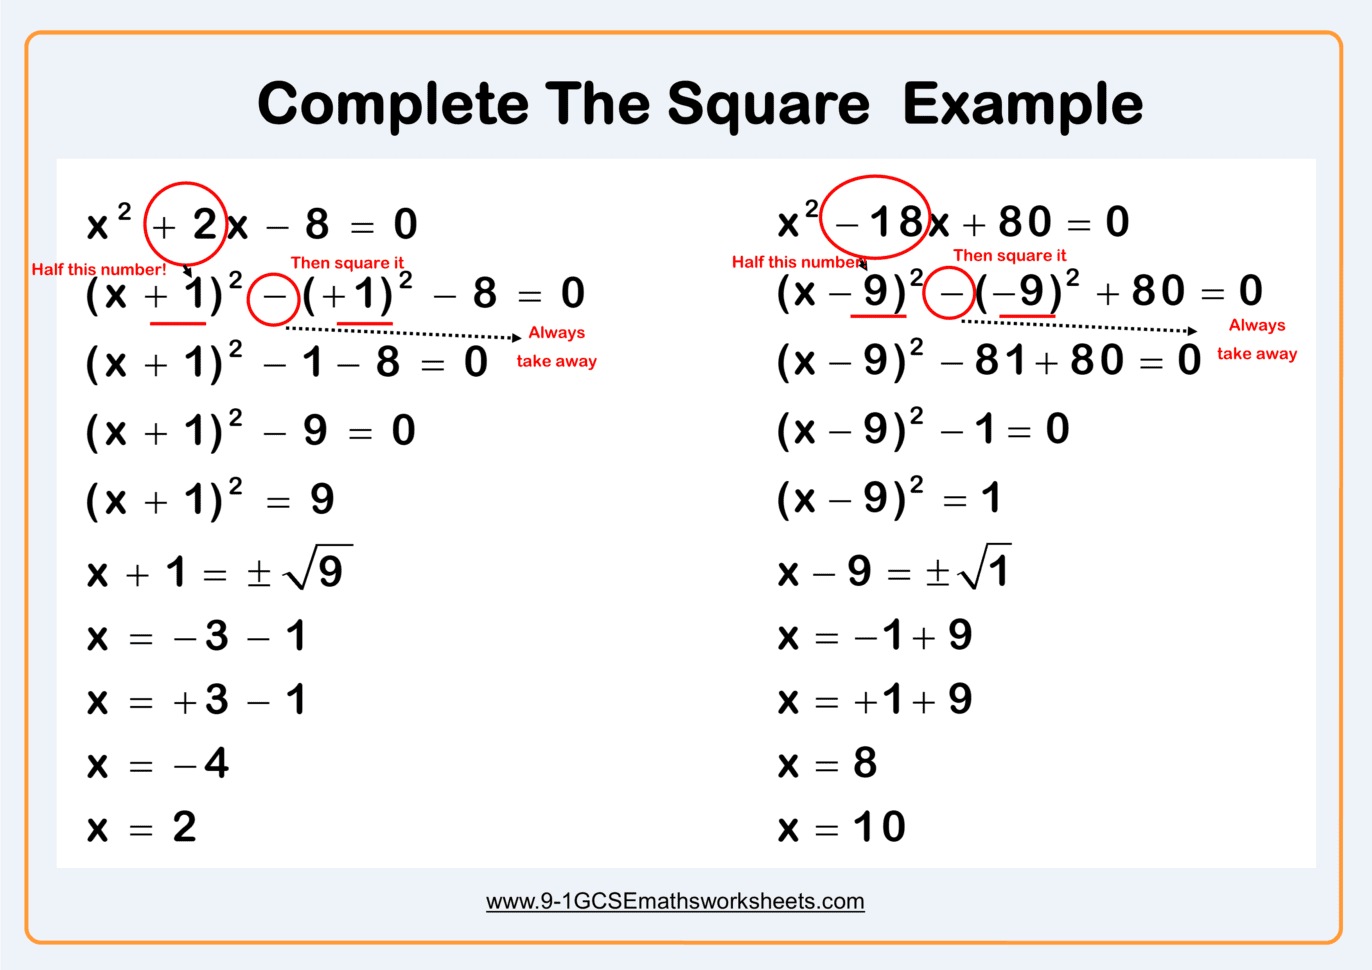 Completing The Square Worksheet Practice Questions Cazoomy